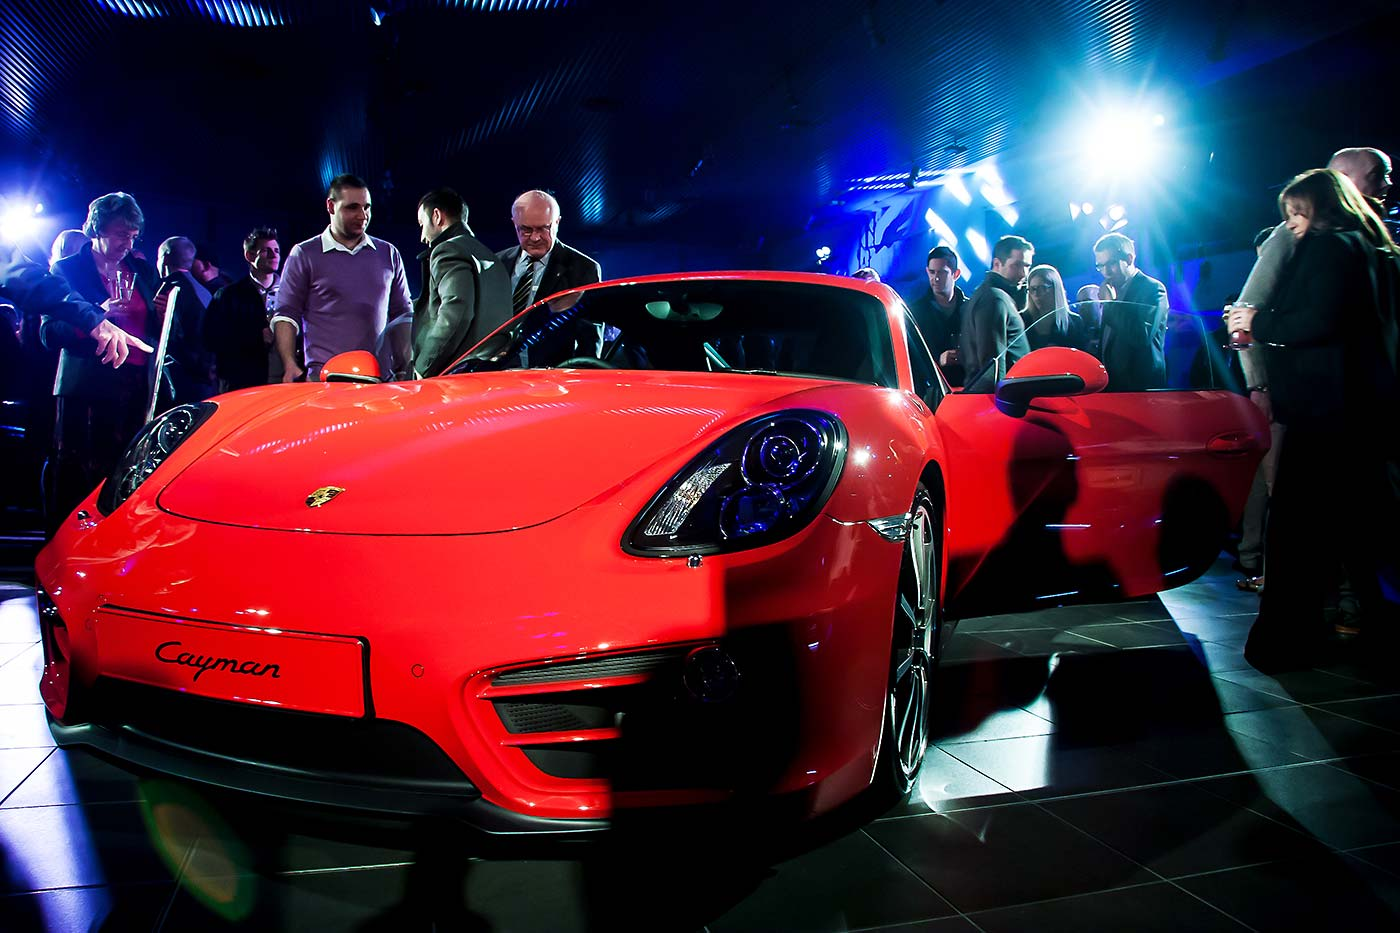 Porsche-Cayman-S-launch-event.jpg